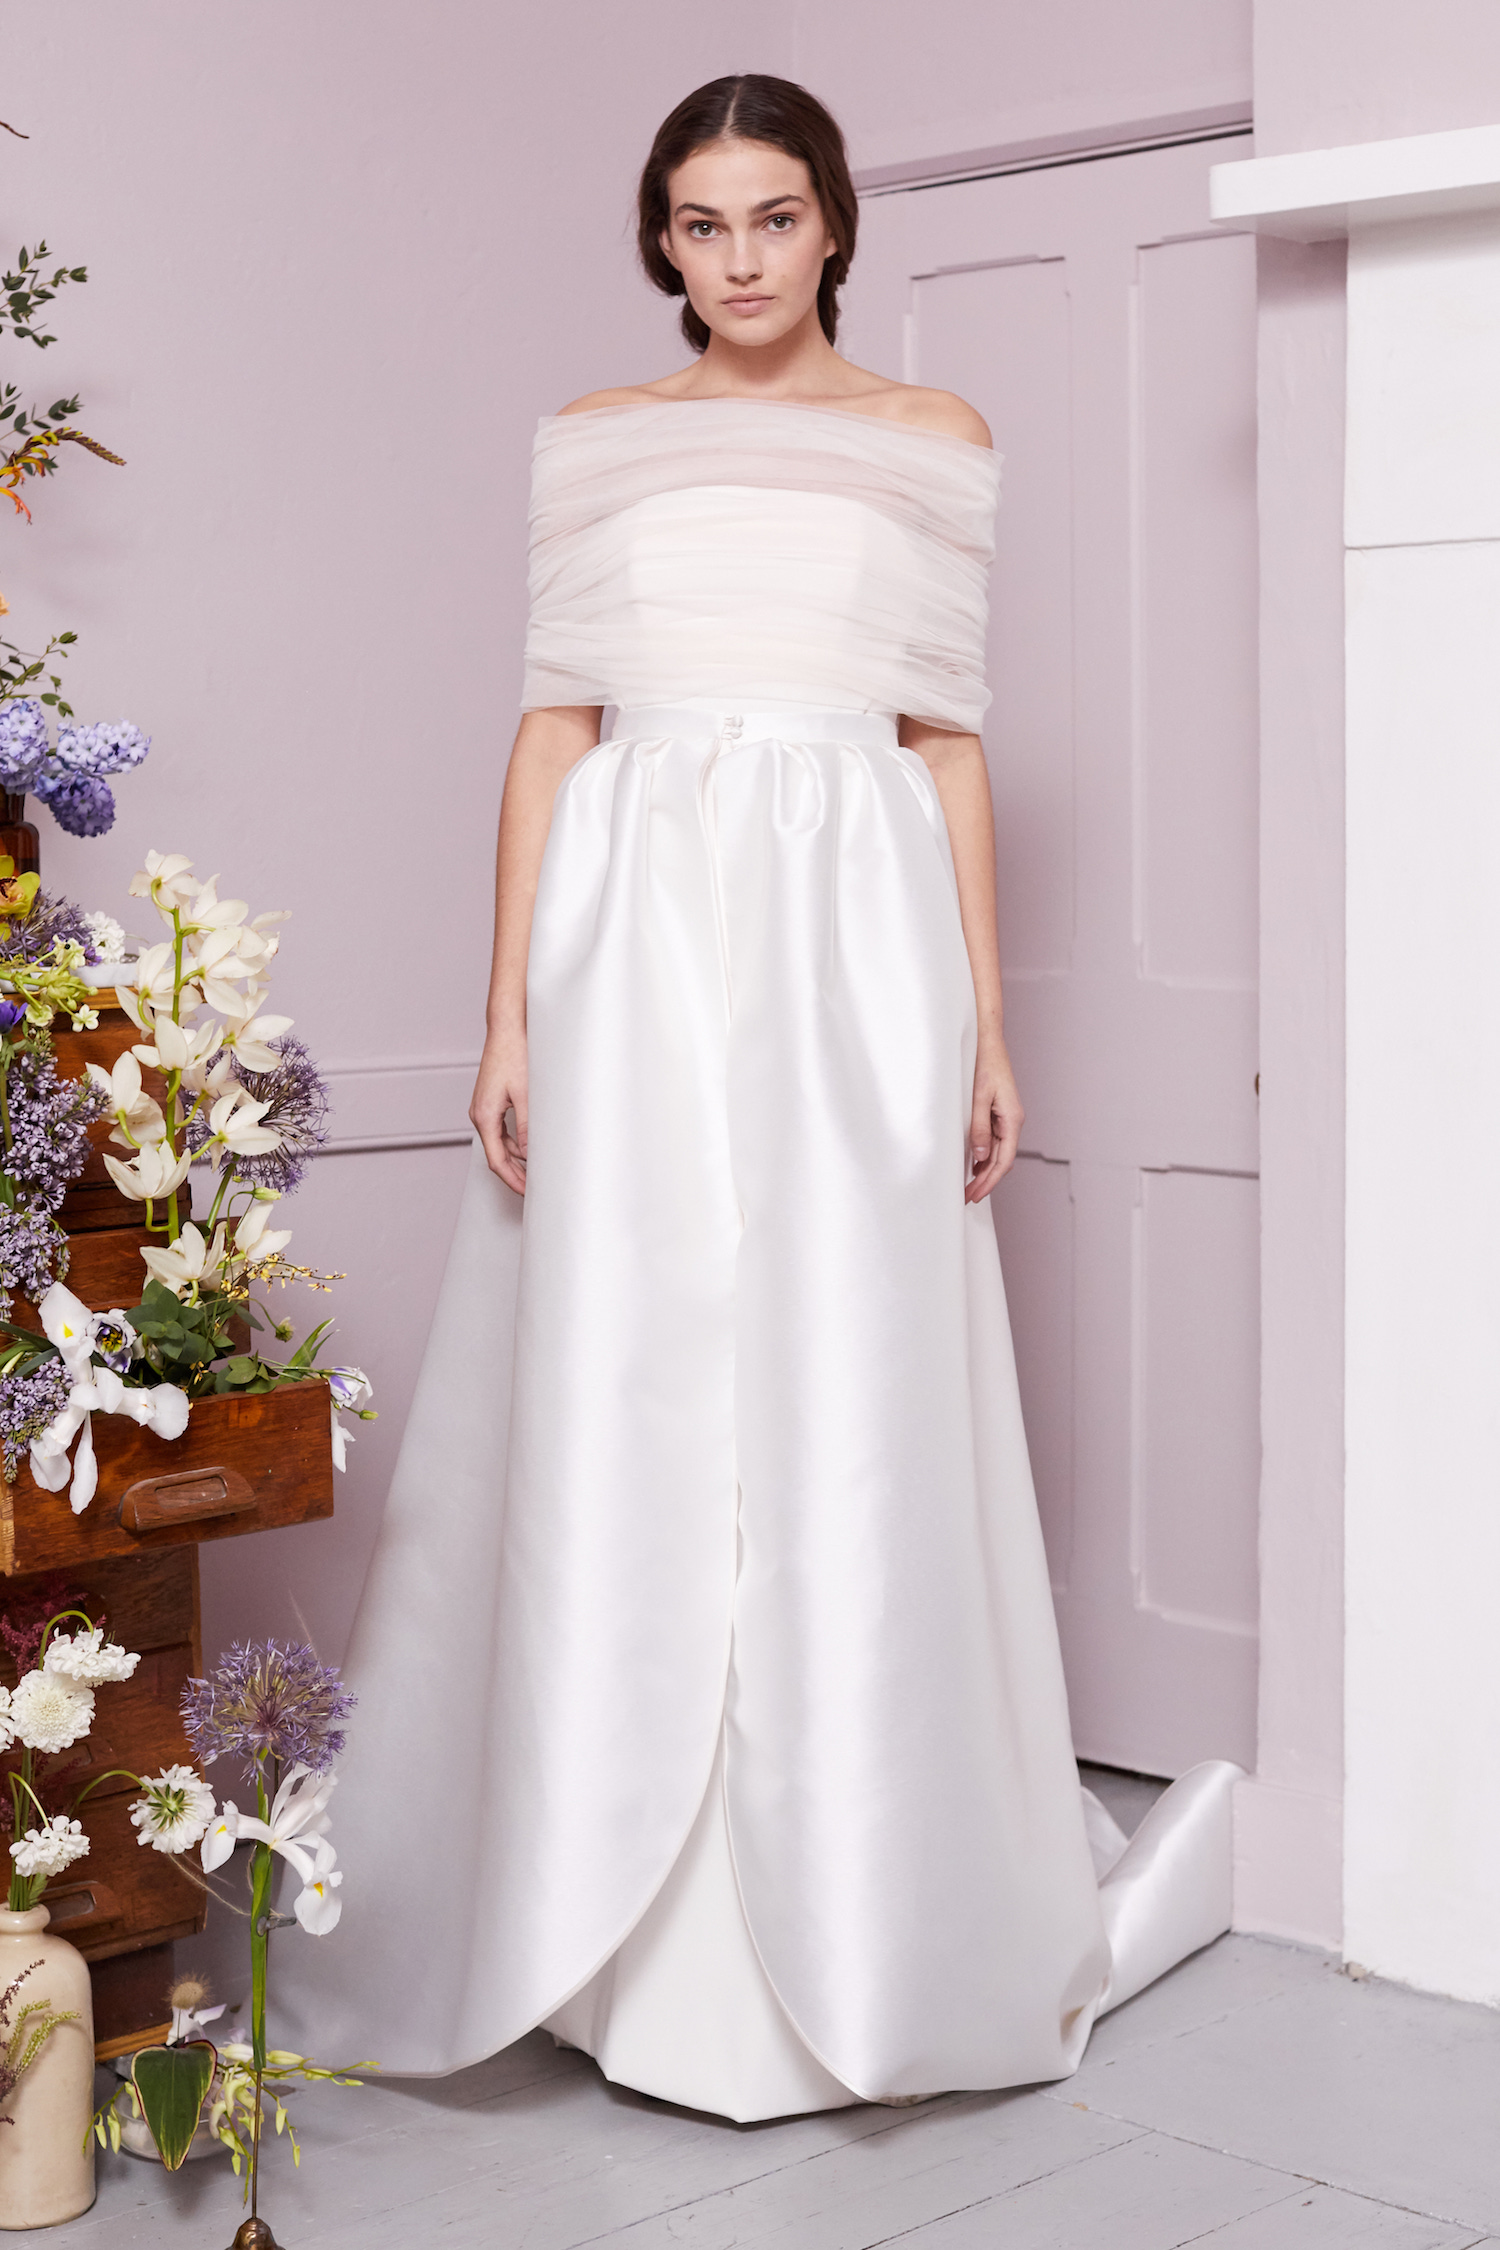 MANET SHRUG & OLVER DRESS | WEDDING DRESS BY HALFPENNY LONDON